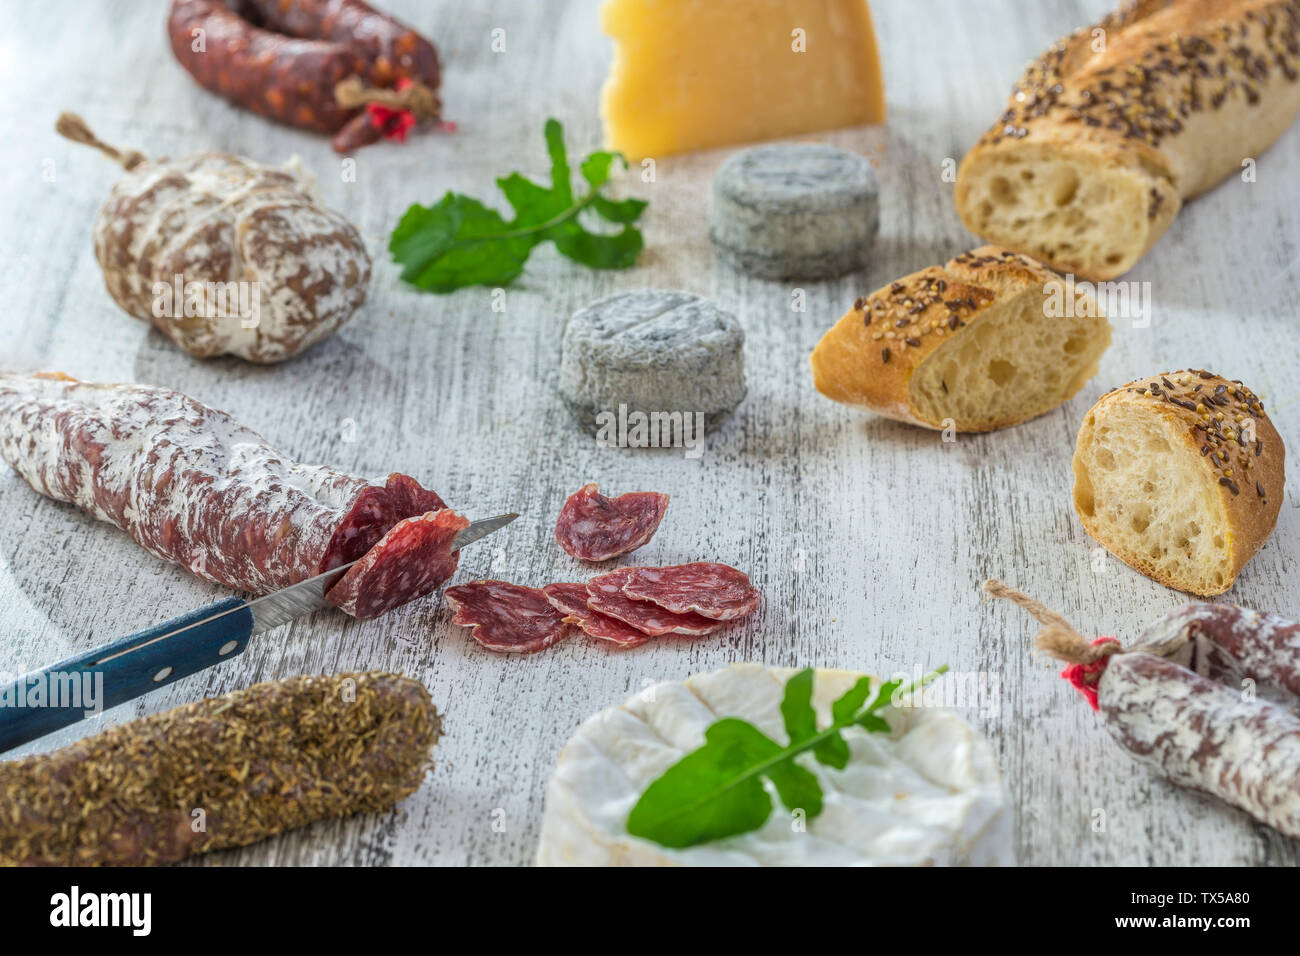 French snacks with wine - various types of cheeses, bread , dry saussages, charcuterie, red vine on a gray background. Top view. Food background Stock Photo